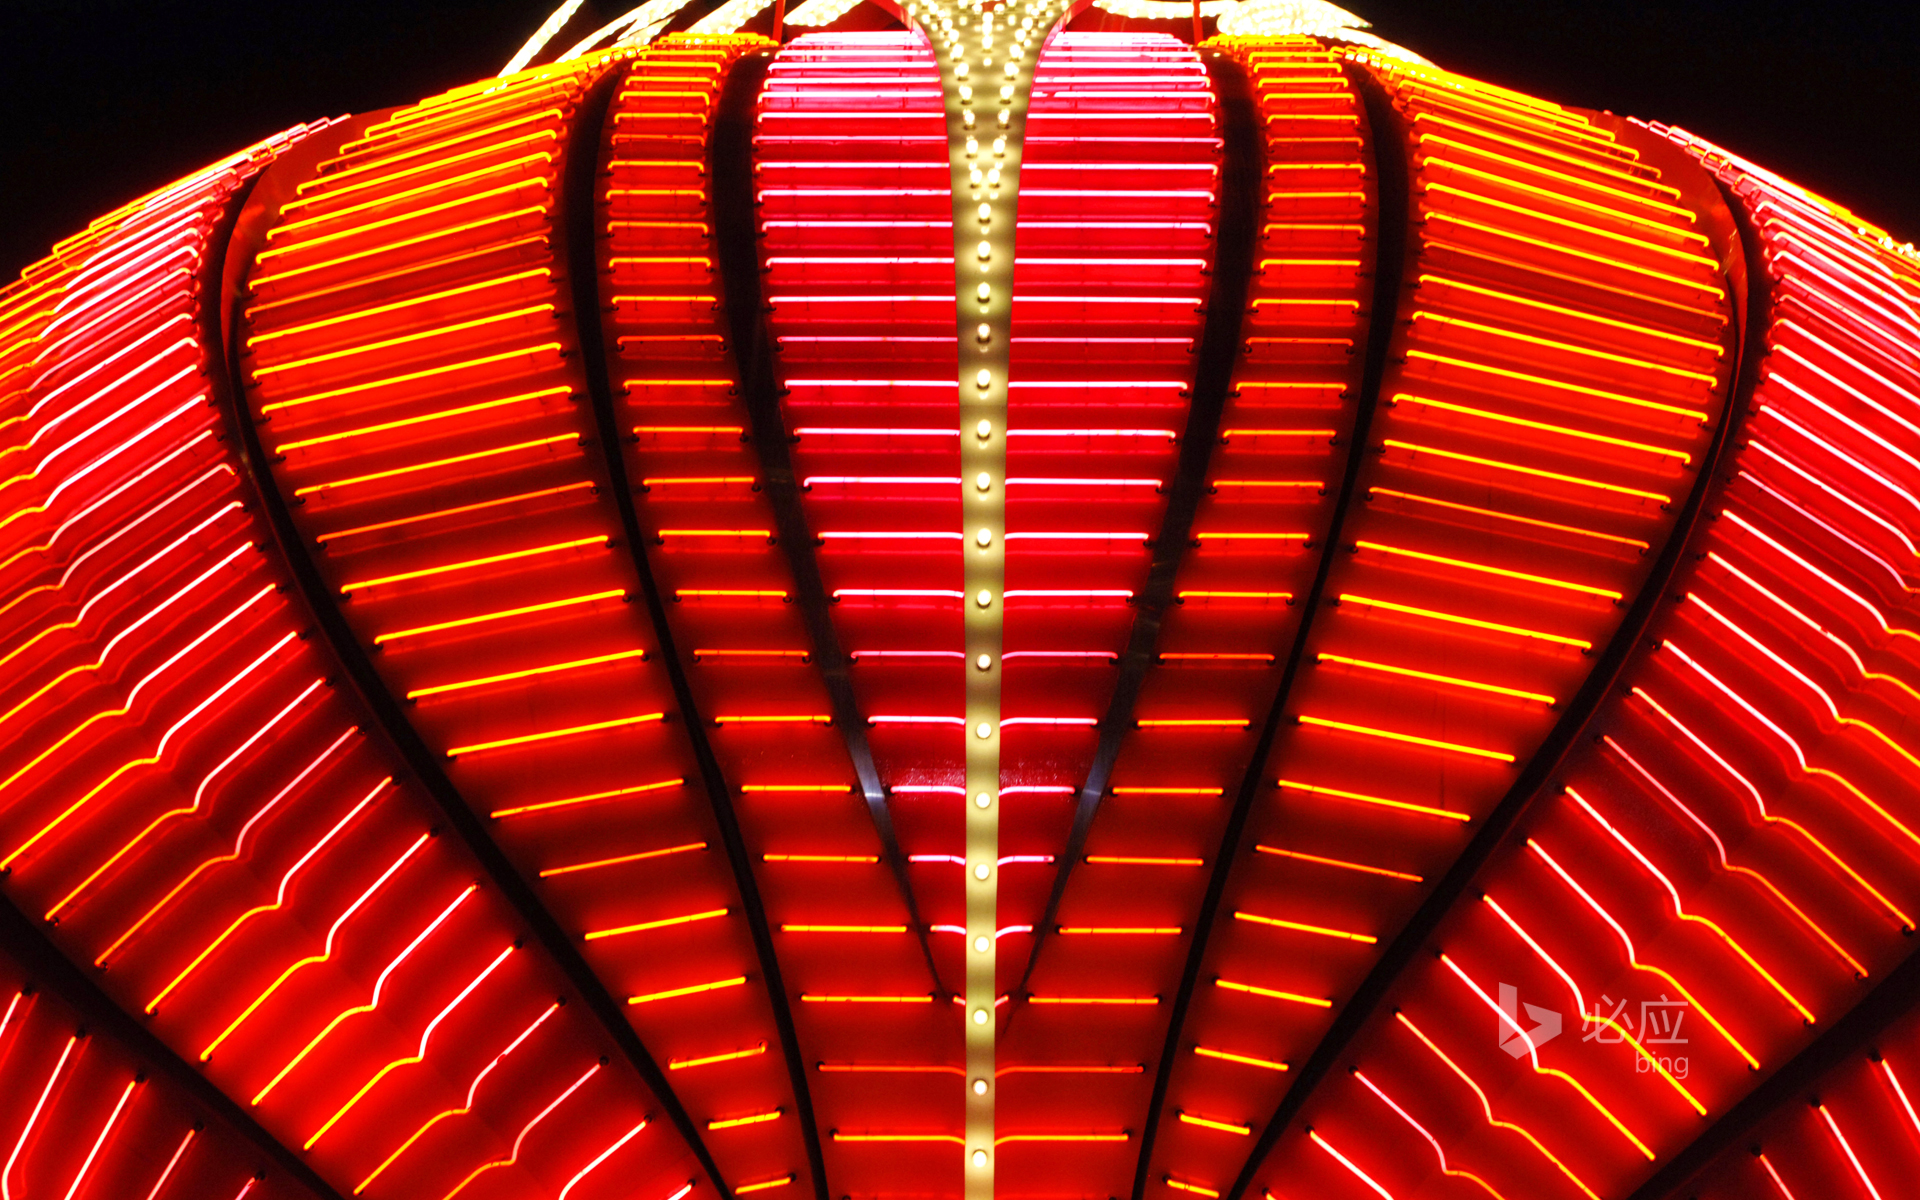 Neon sign at the Flamingo Casino in Las Vegas, USA